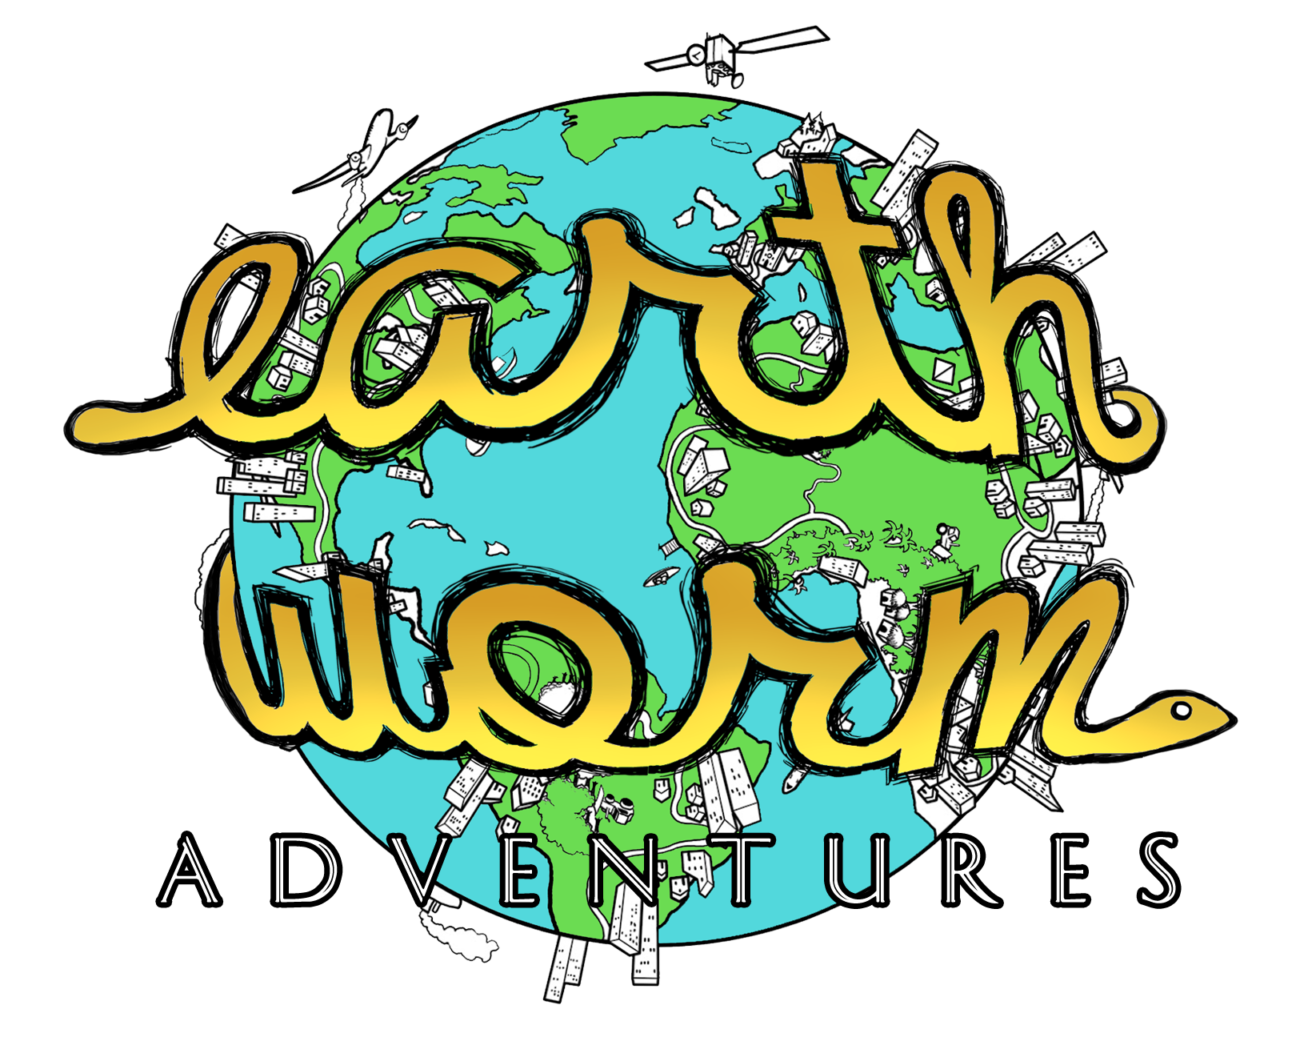 http://earthwormadventures.com/wp-content/uploads/2016/10/cropped-cropped-Earth-Worm-Adventures-3-1.png